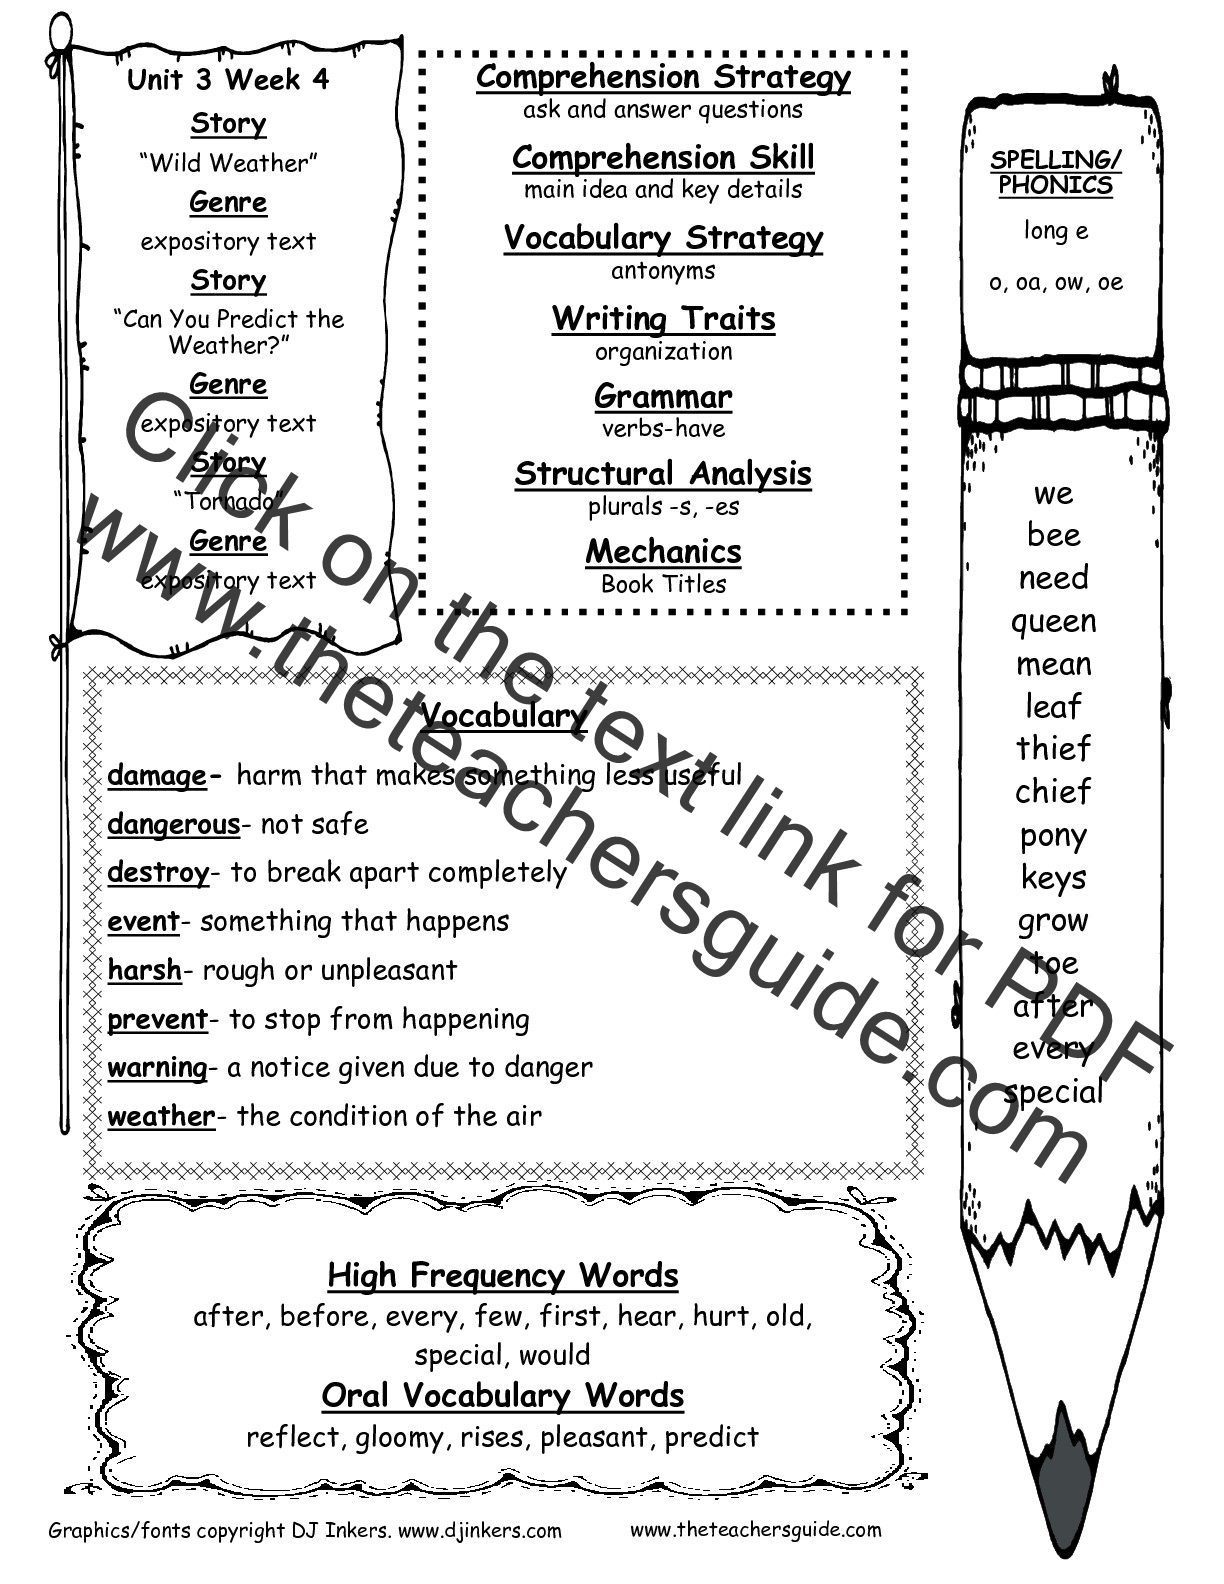 Inflected Endings Worksheet For 2nd Grade